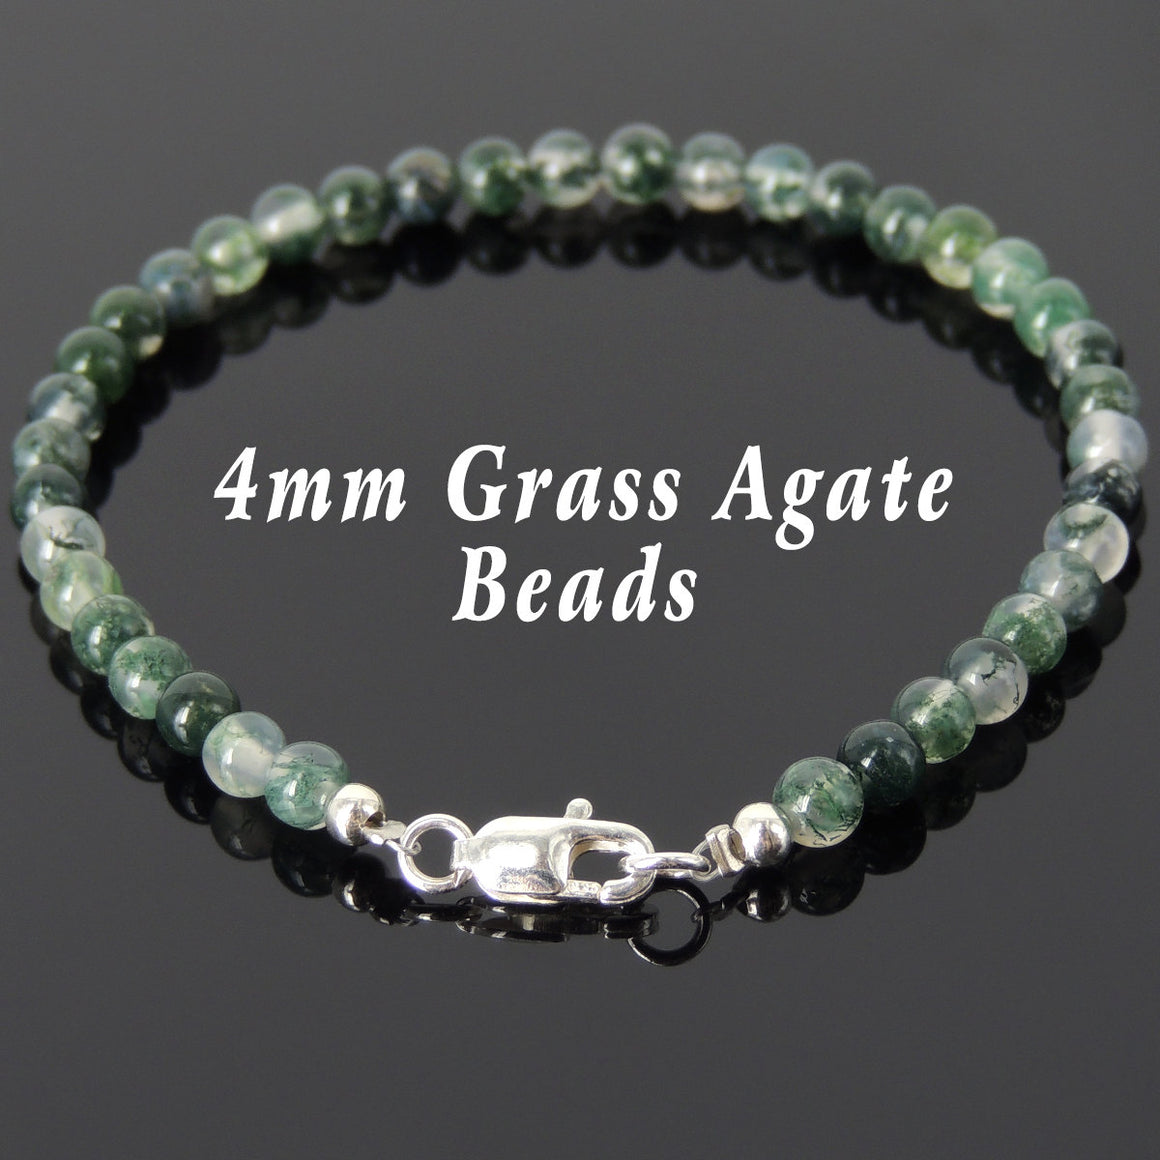 4mm Grass Agate Healing Gemstone Bracelet with S925 Sterling Silver Spacers Nugget Beads & Clasp - Handmade by Gem & Silver BR541